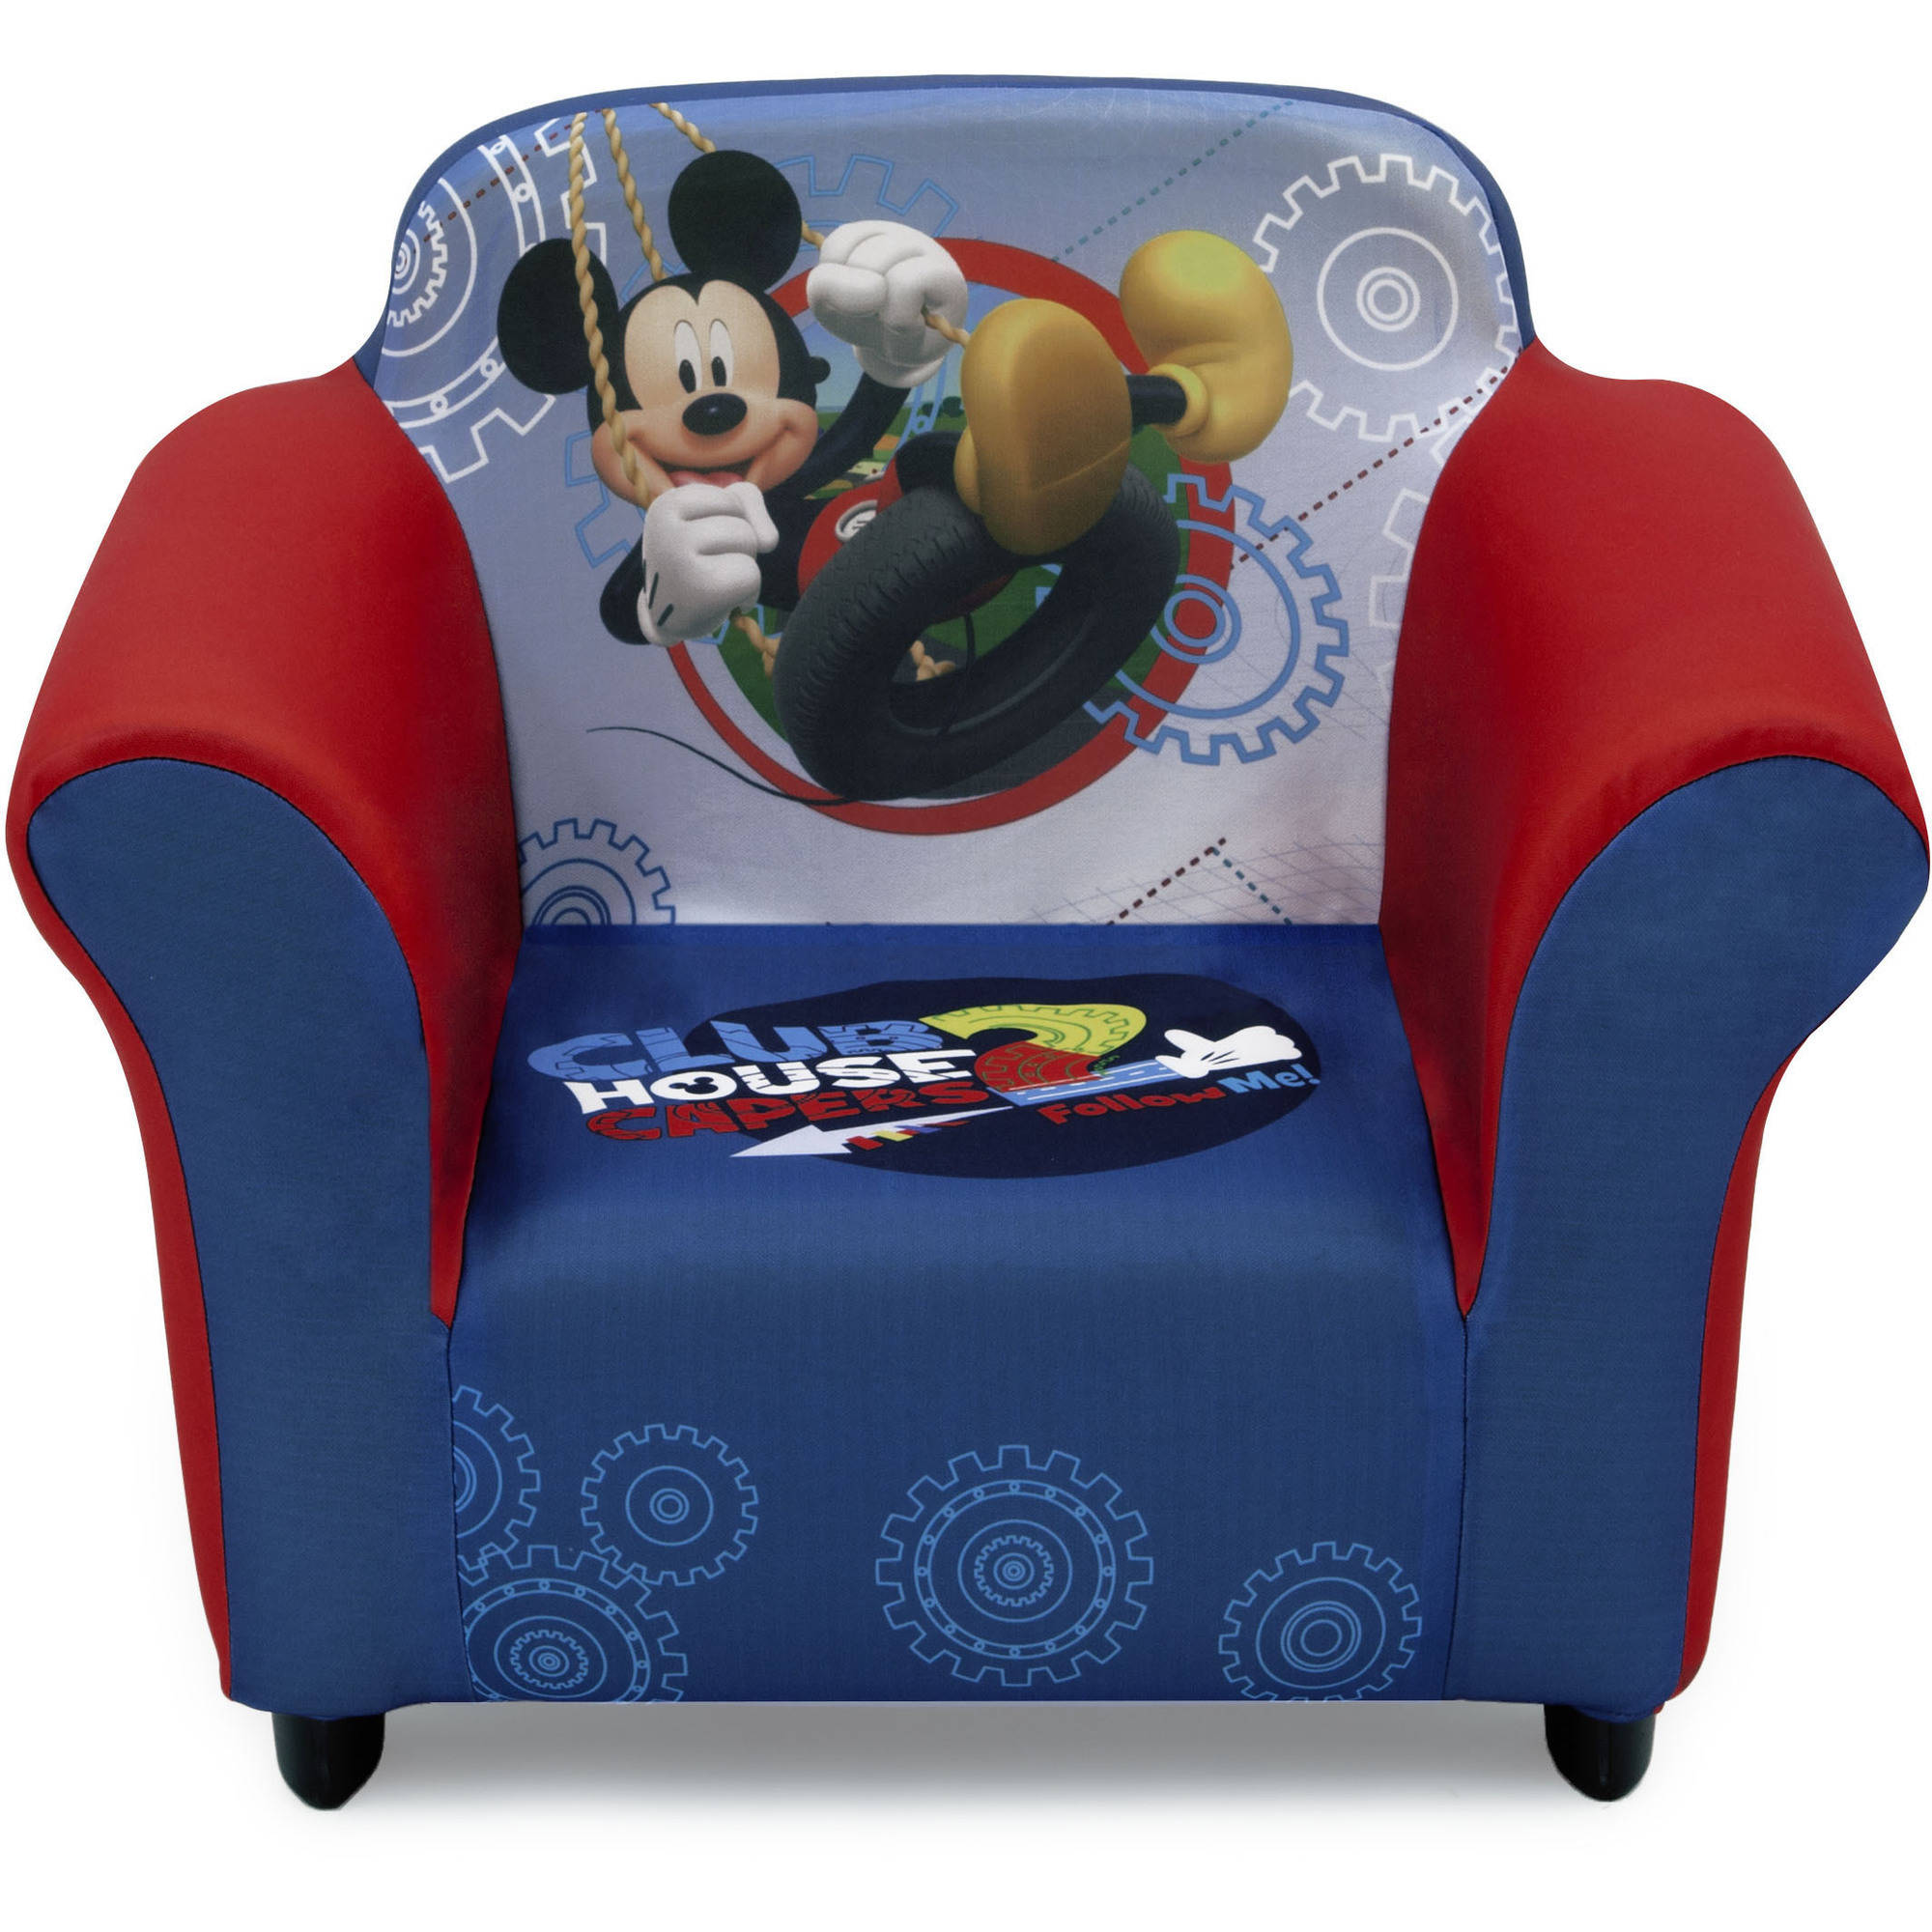 Disney Mickey Mouse Plastic Frame Upholstered Chair